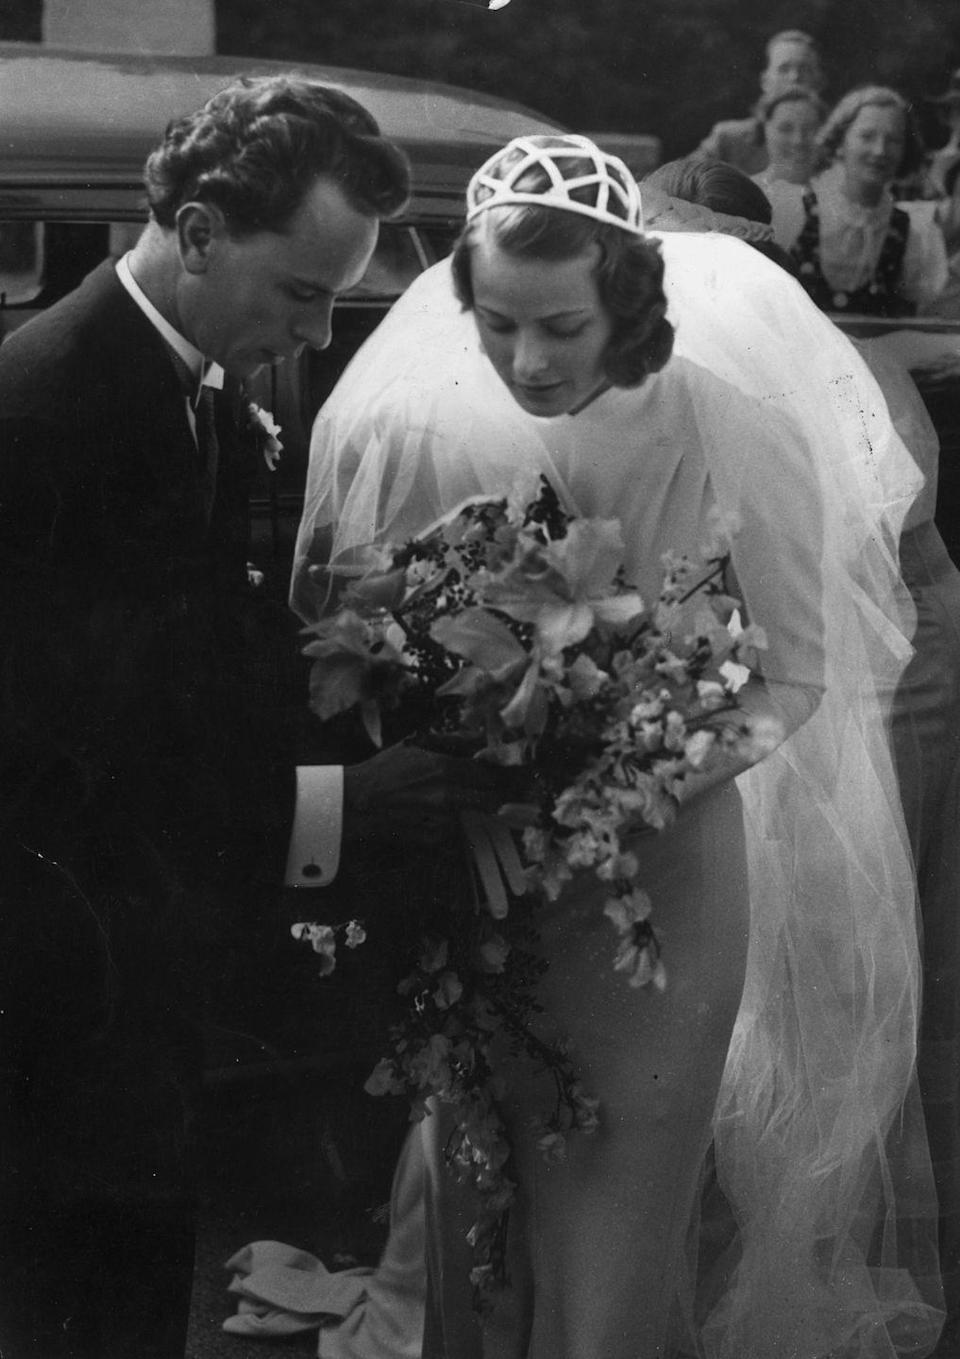 <p>When Swedish-born actress Ingrid Bergman wed Petter Lindström in 1937, the bride's simple crepe gown was of typical fashion for the decade. Her real showstopper? The caged juliet cap that she wore on top of her pin curls and veil. </p>